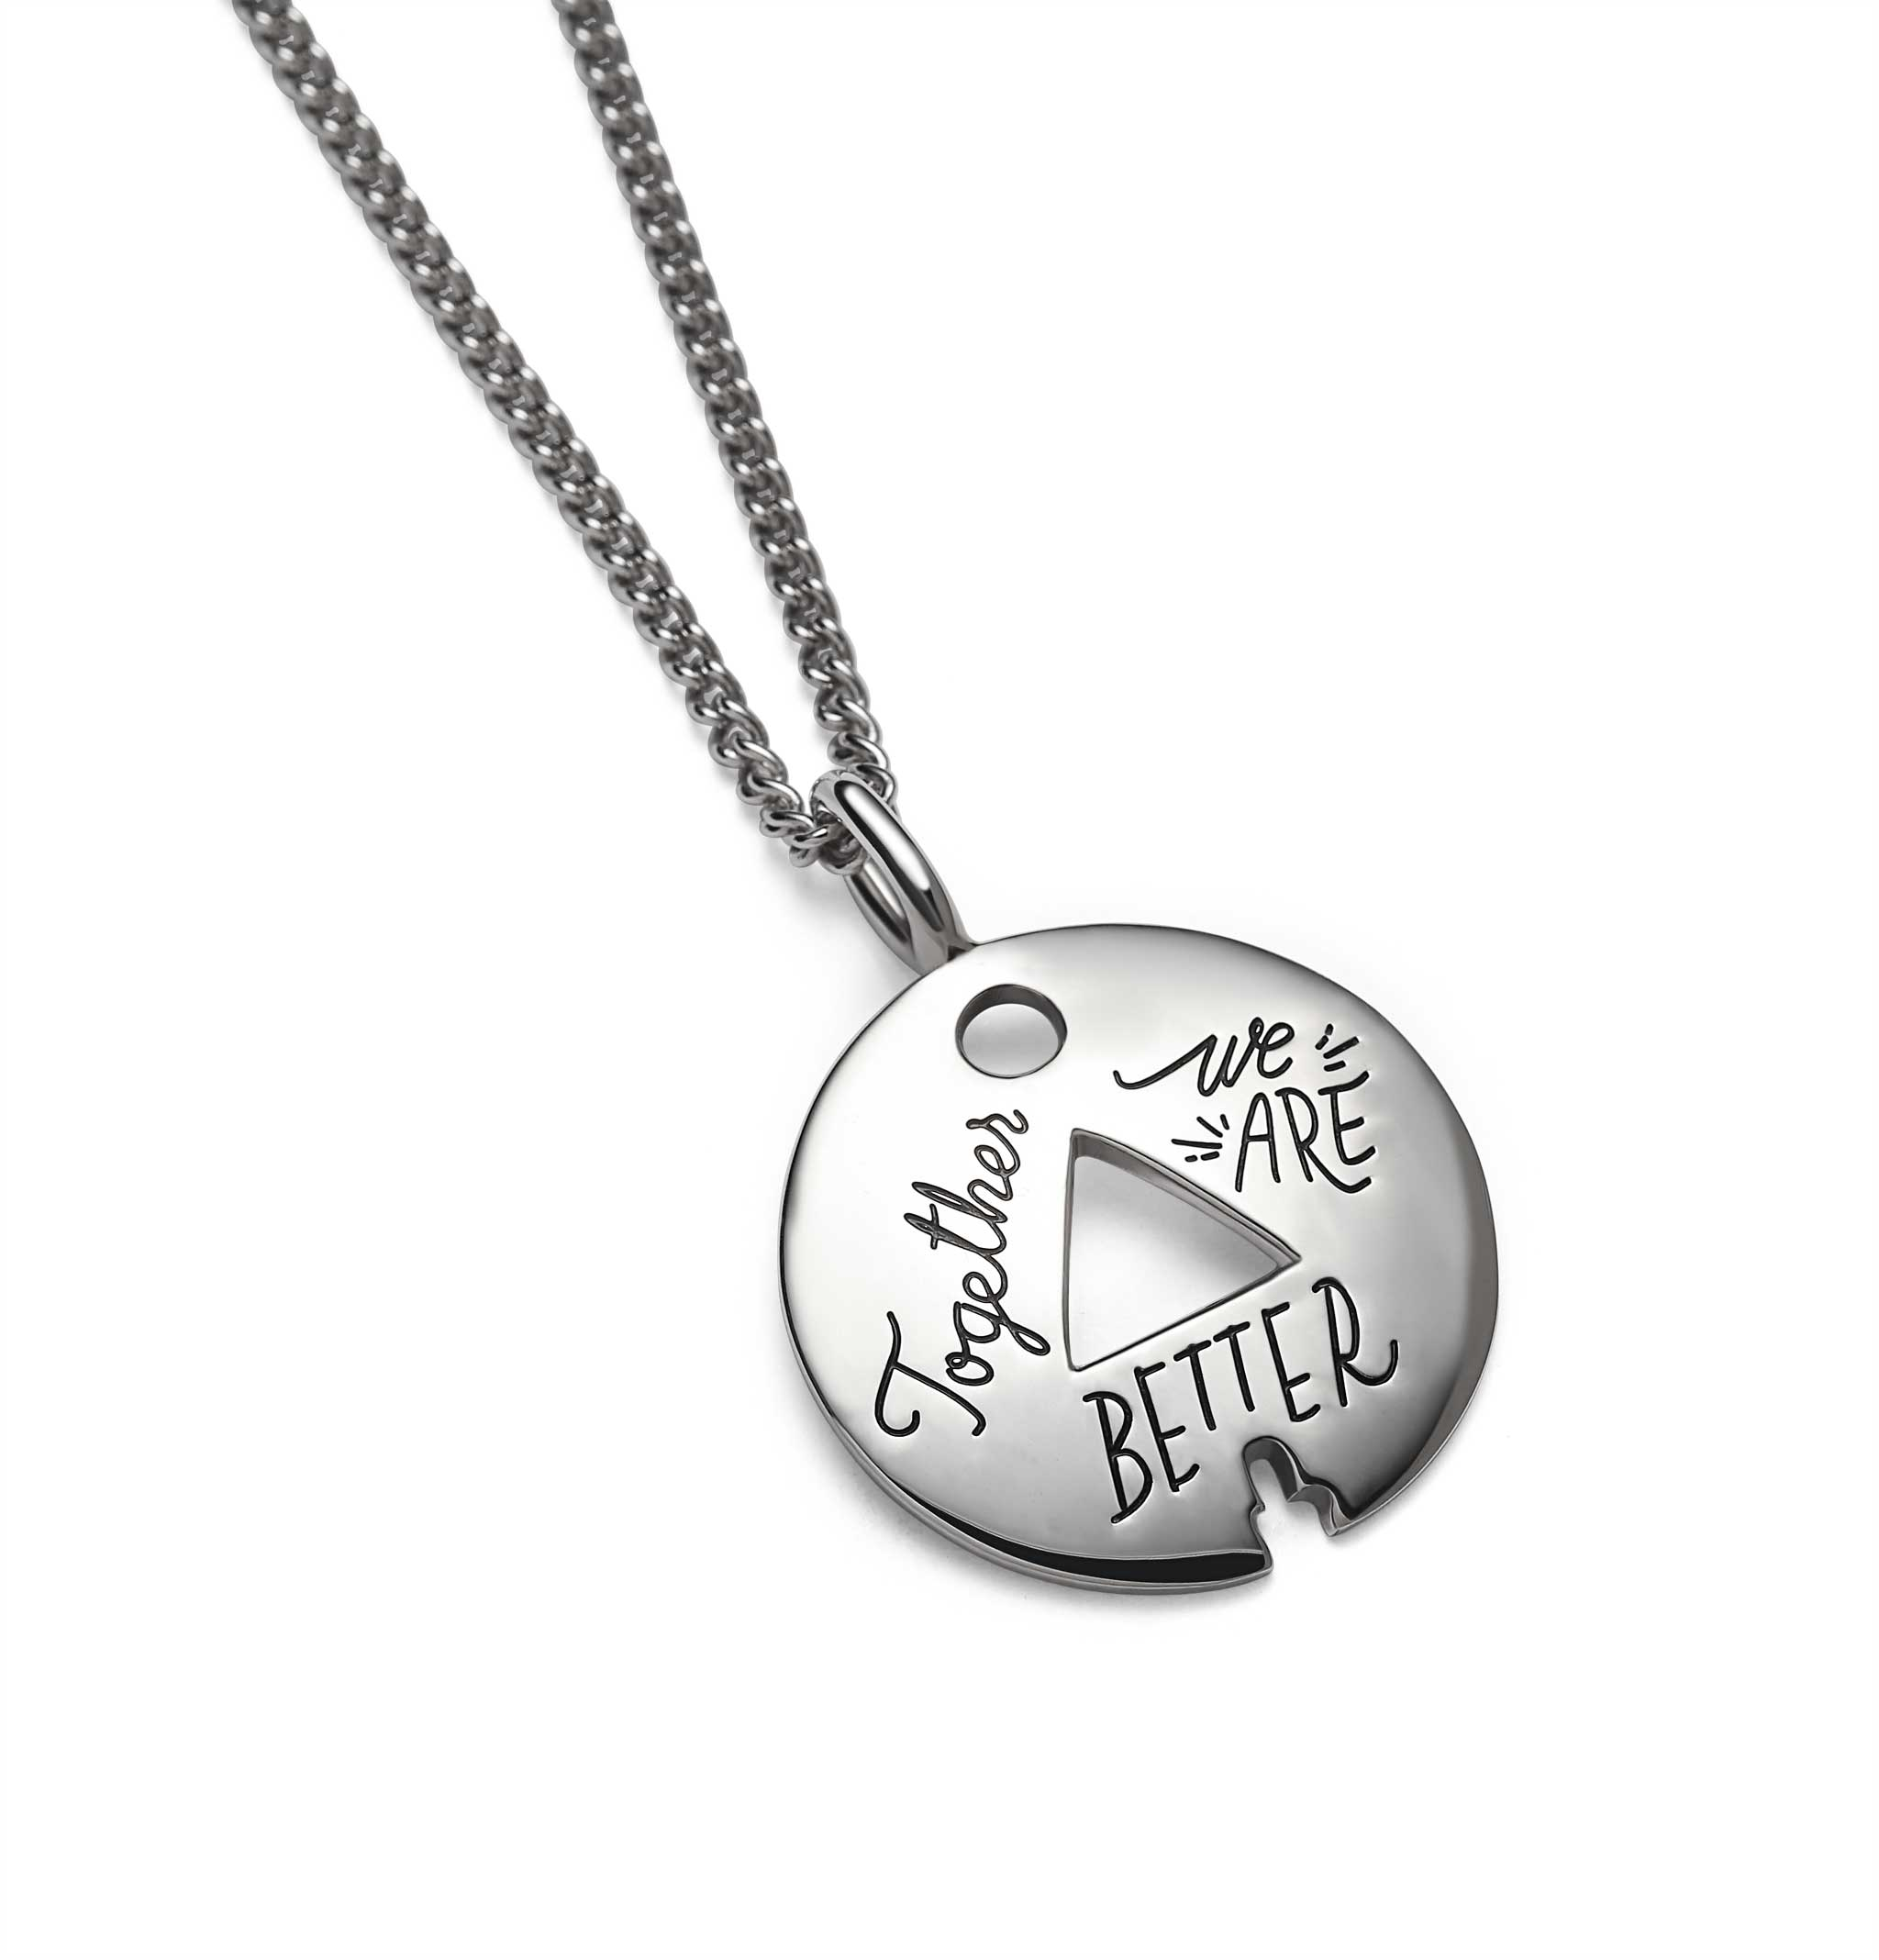 Circle Sterling silver token with triangle and small circle cutouts. Hand lettered message reads: Together we are better.